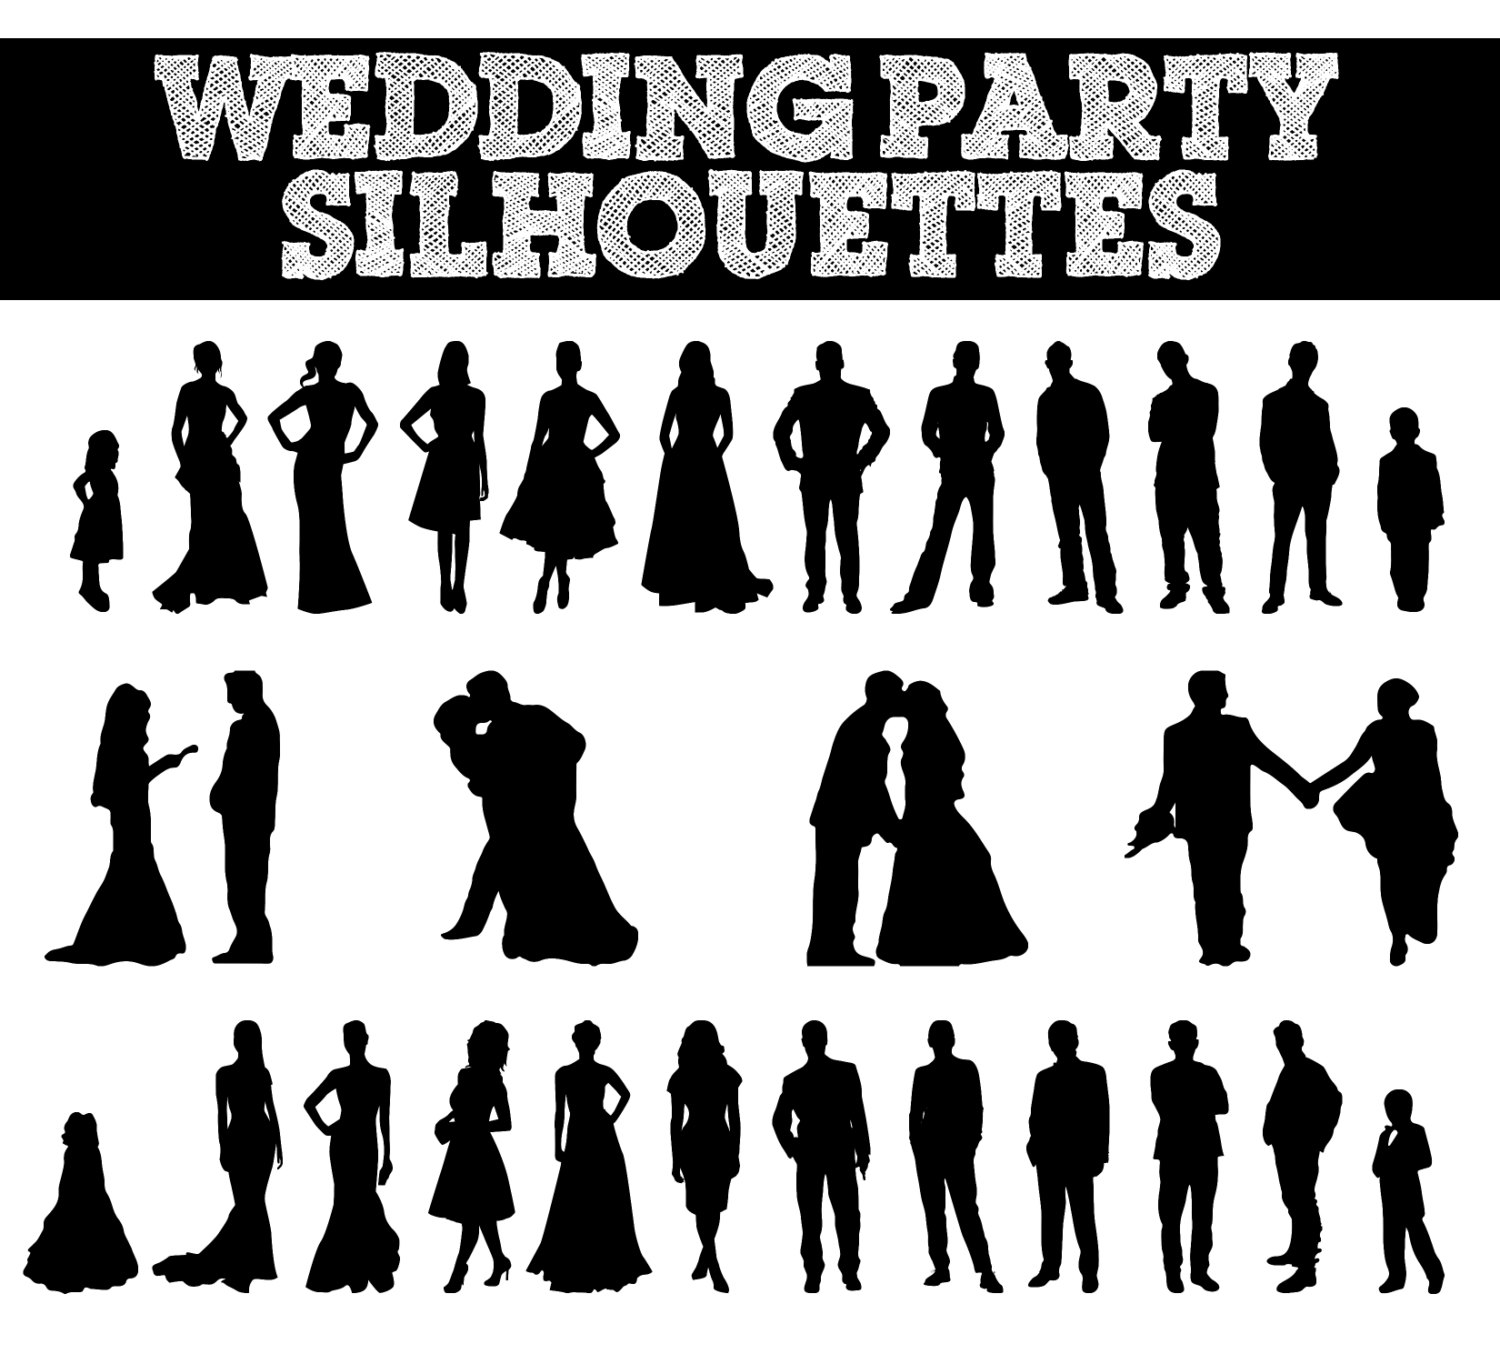 bridesmaid clipart silhouetteShowing Pic Gallery For Wedding Party Silhouette Clip Art RkSnJJUp | Silhouette | Pinterest | Romantic, Wedding and Couple